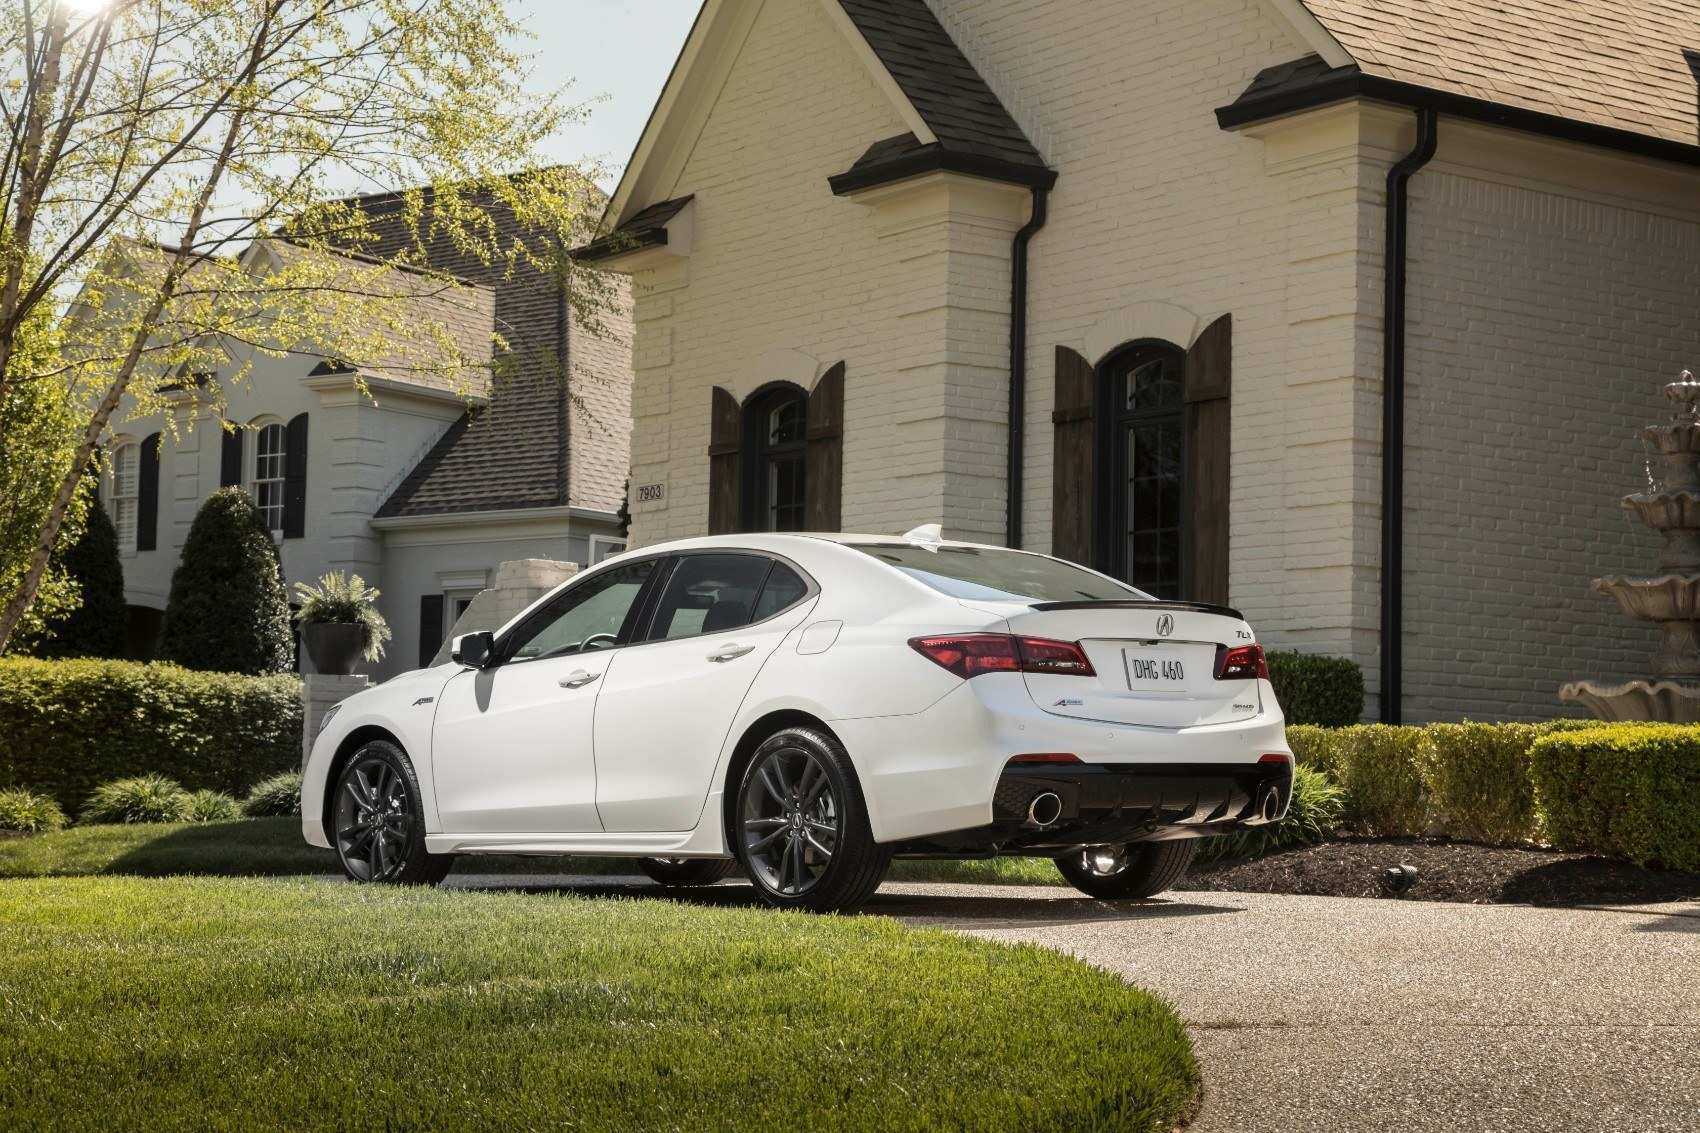 56 New 2020 Acura TLX Wallpaper